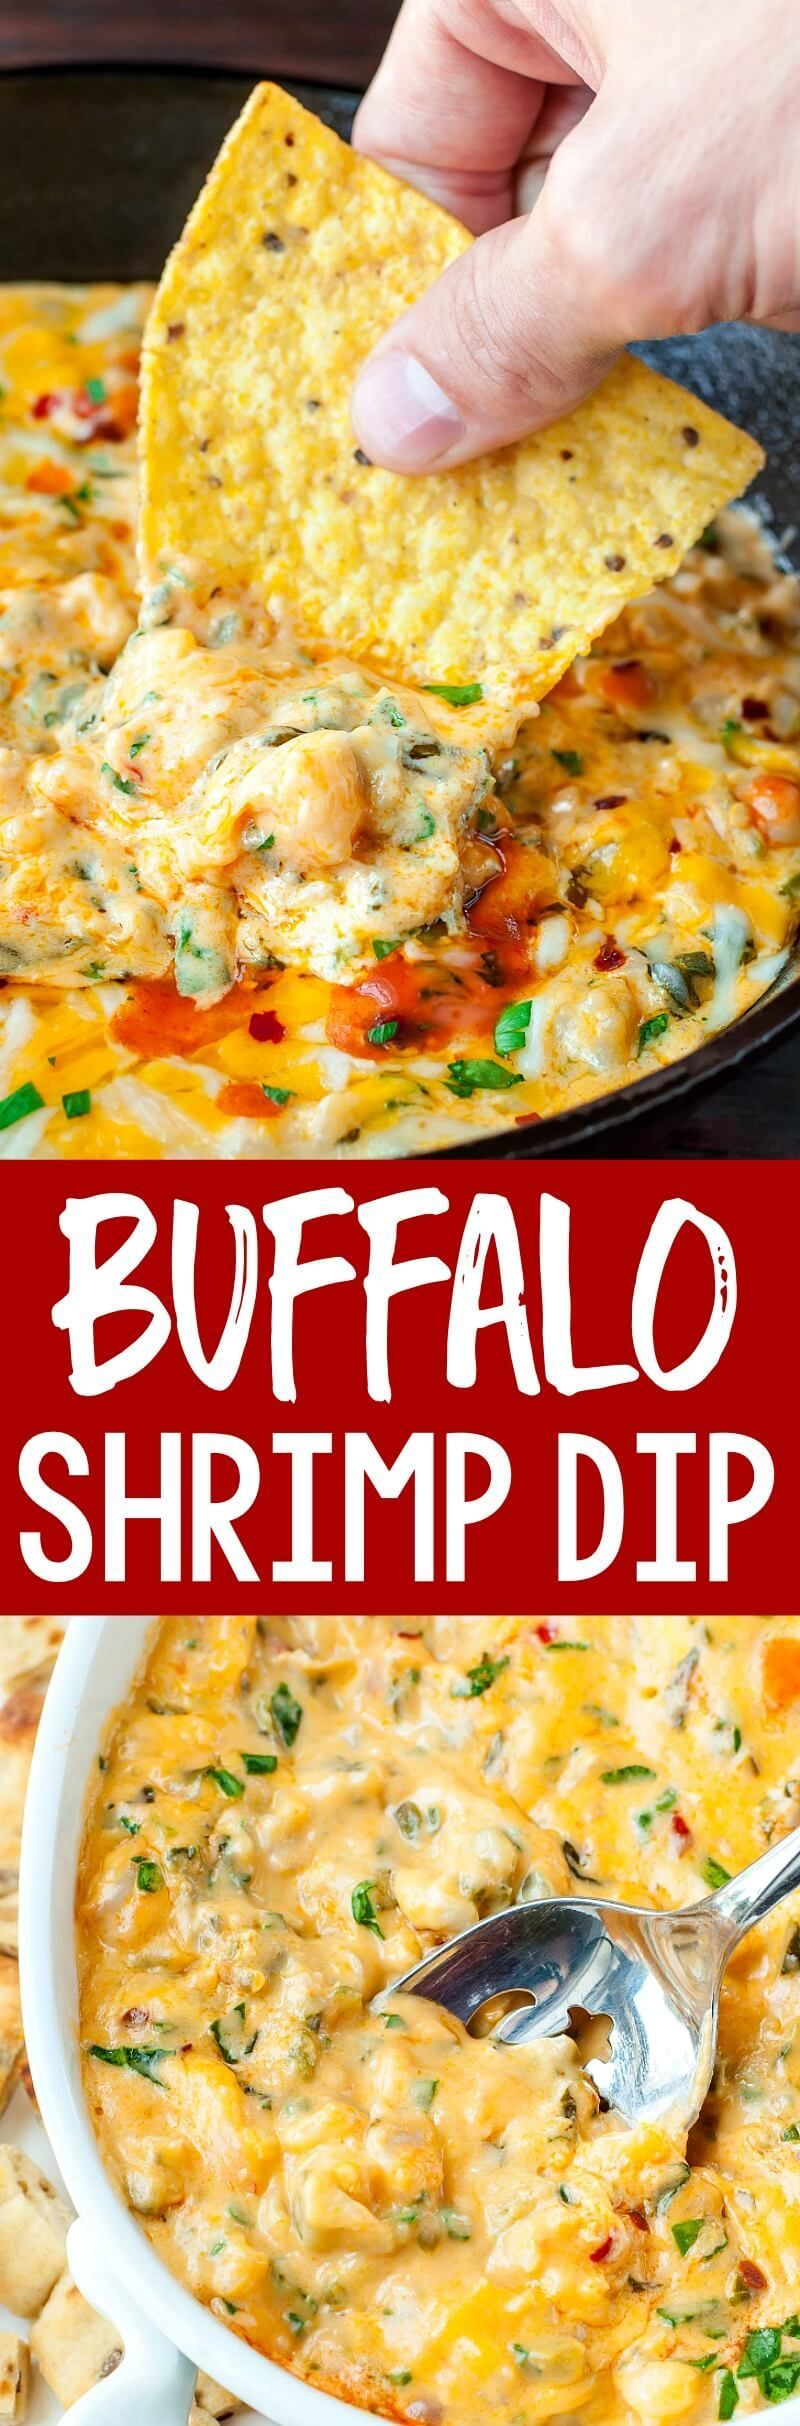 Buffalo Shrimp Dip Buffalo Shrimp Dip makes the perfect appetizer! Hot melty cheese with shrimp, veggies, and a kiss of hot sauce? Perfection! This easy cheesy dip is perfect for parties or potlucks and the leftovers make an amazing seafood quesadilla! LOVE IT SO! #buffaloshrimp